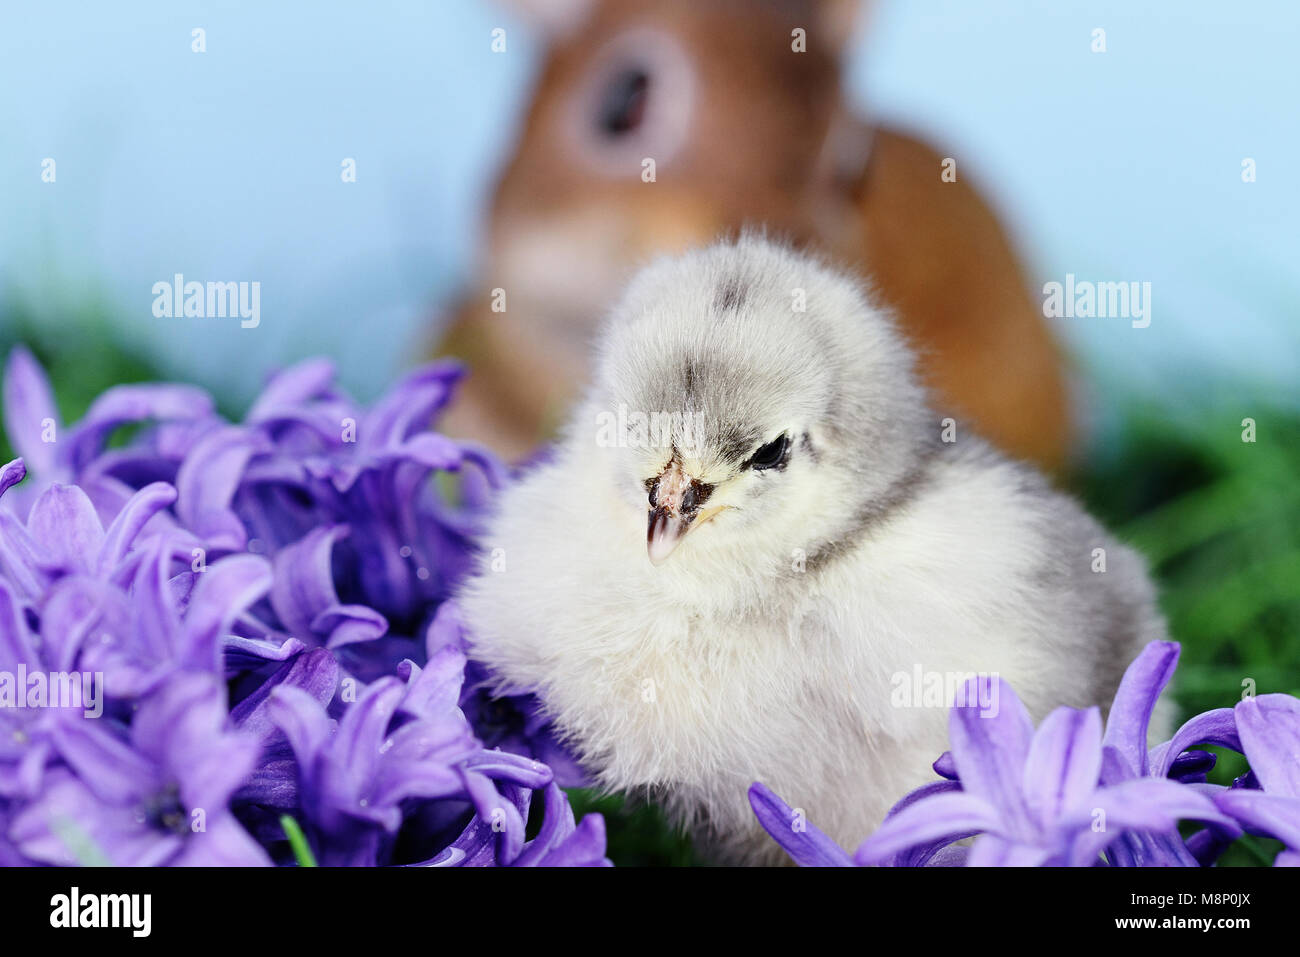 Little white and grey Easter chick sitting in the middle of purple hyacinth flowers with a brown bunny rabbit in - Stock Image